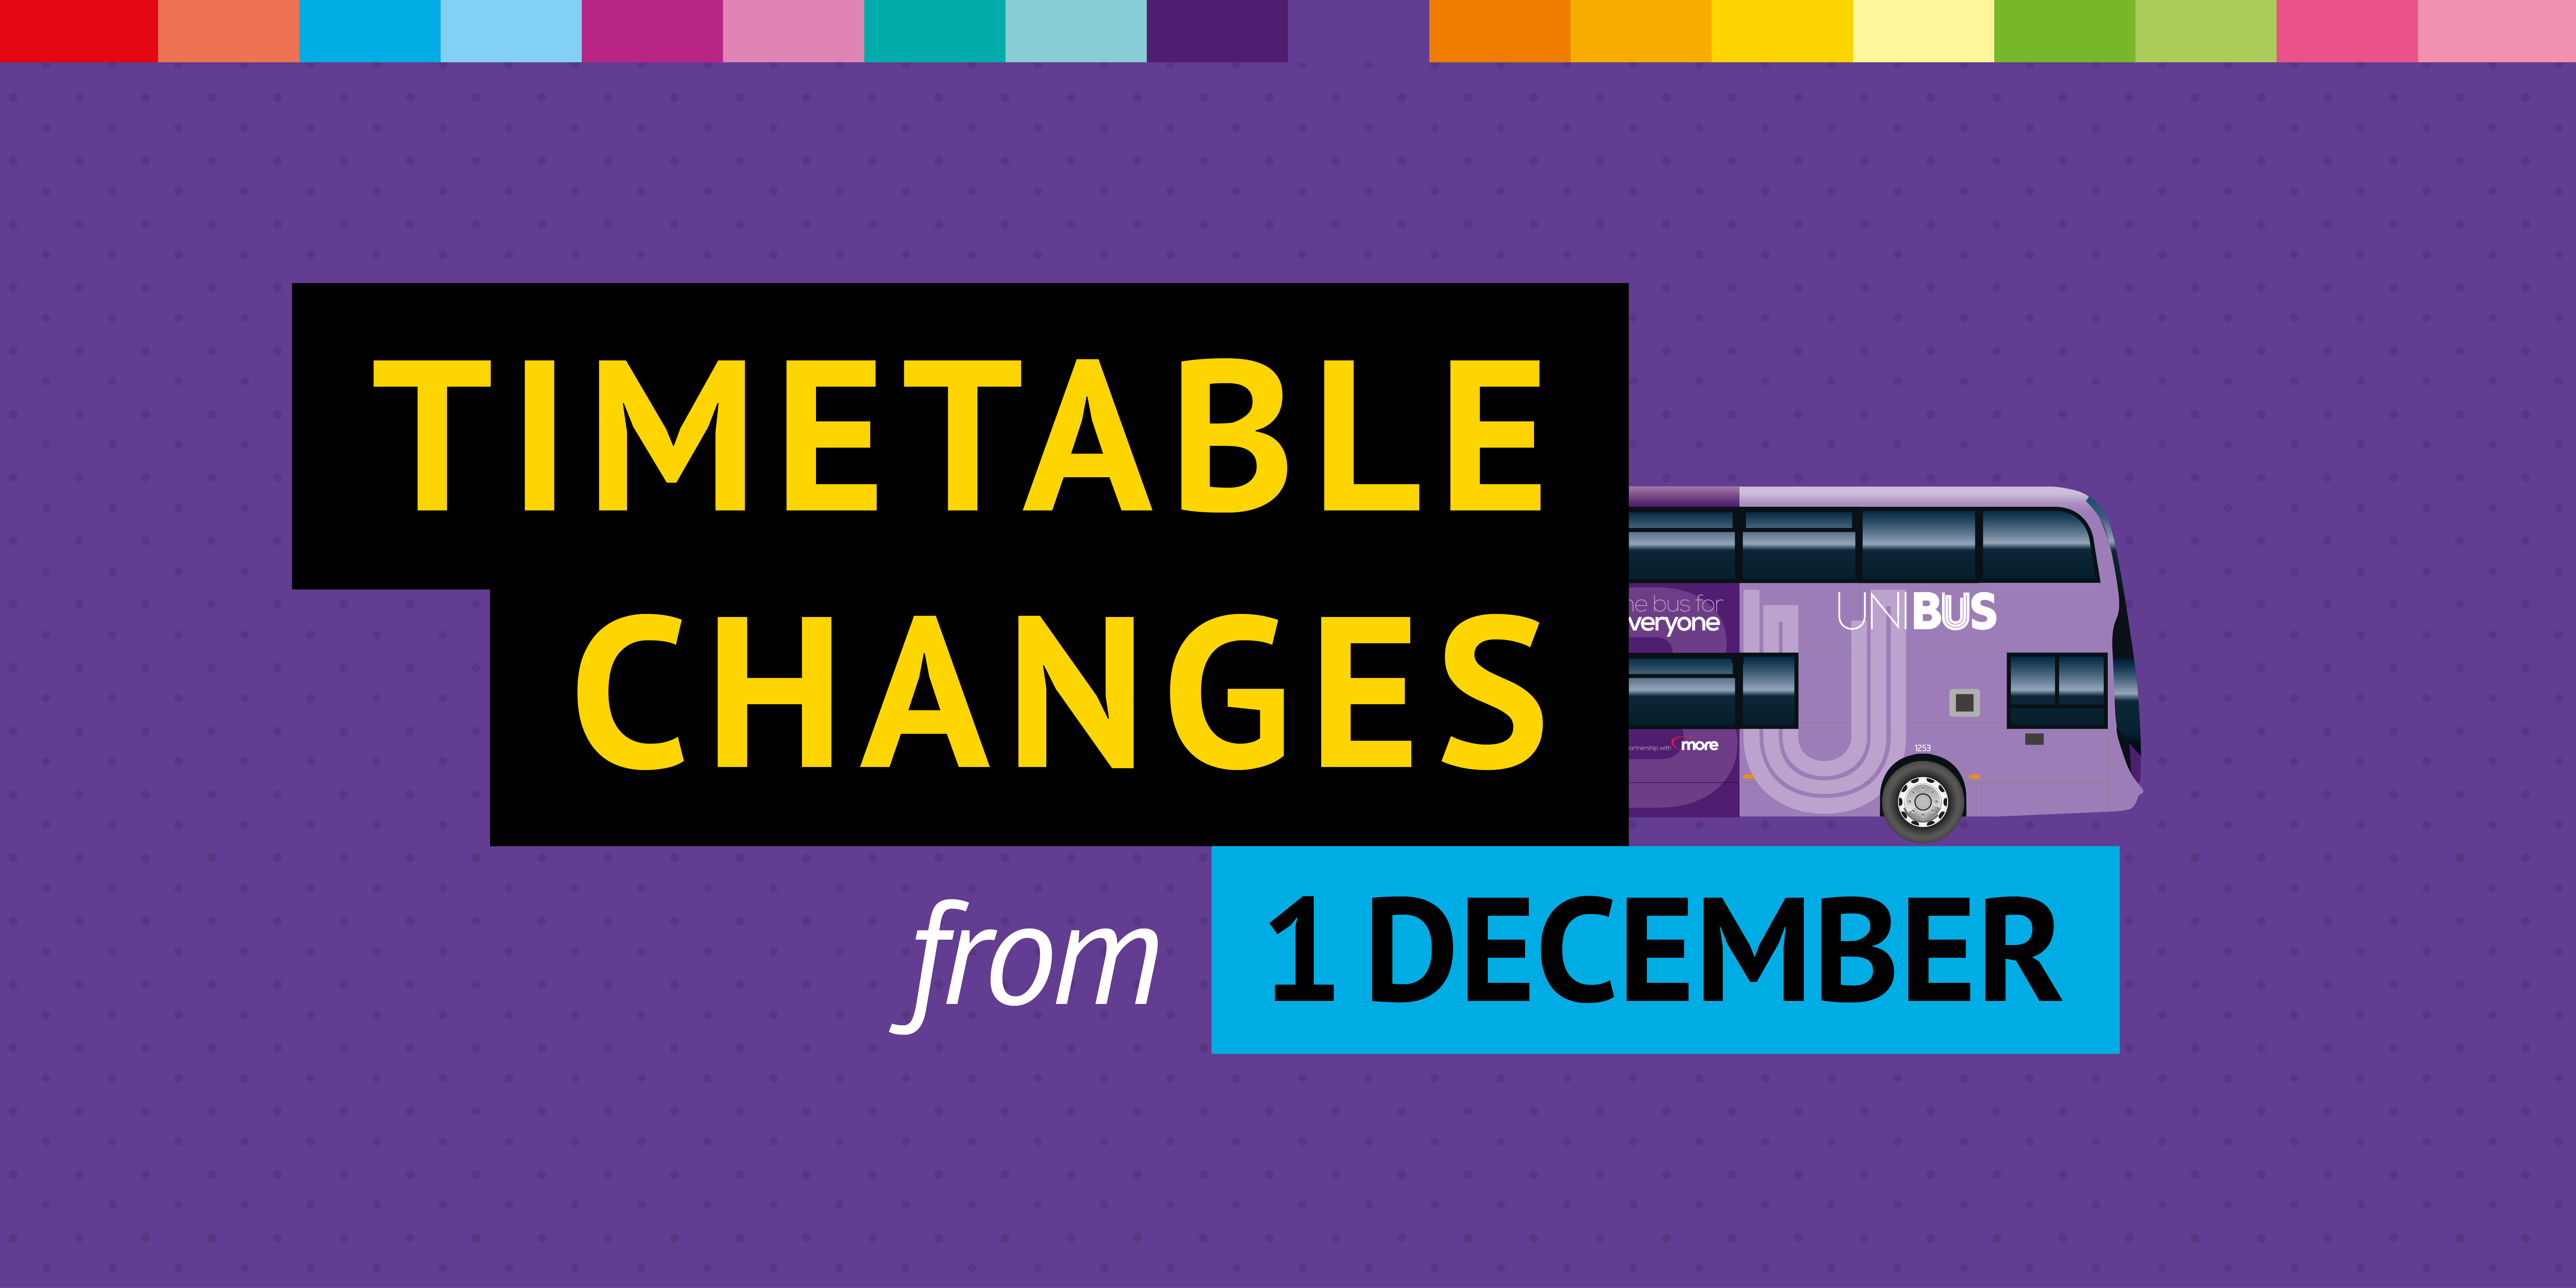 Image of a UNIBUS with text reading 'Timetable changes from 1st December'